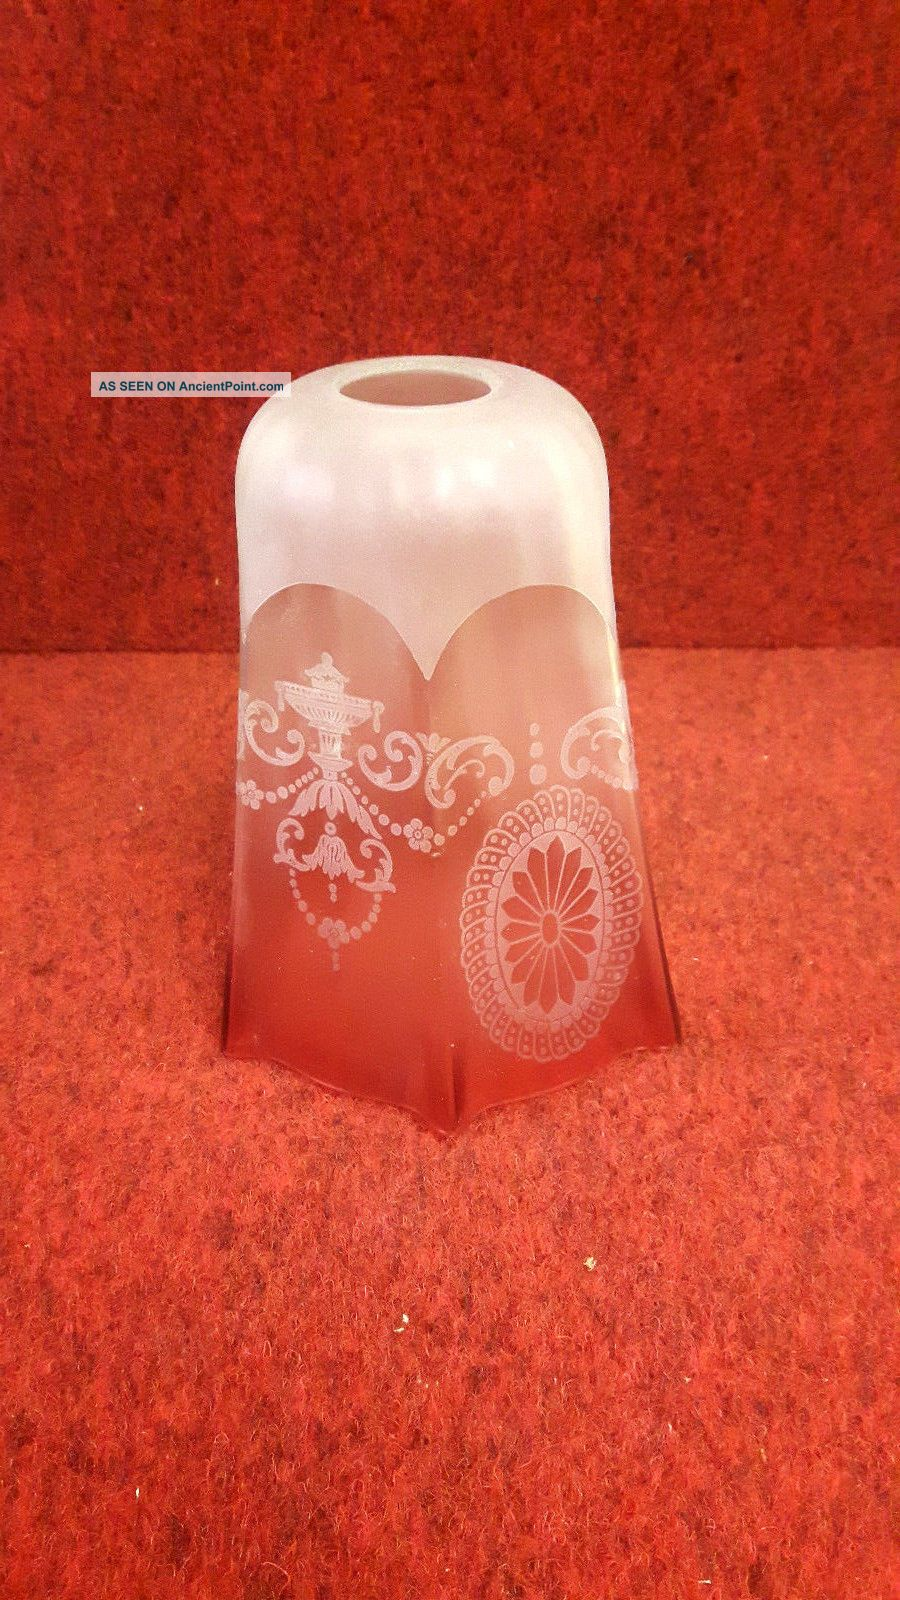 Fluted Cranberry Etched Glass Light Shade Edwardian (1901-1910) photo